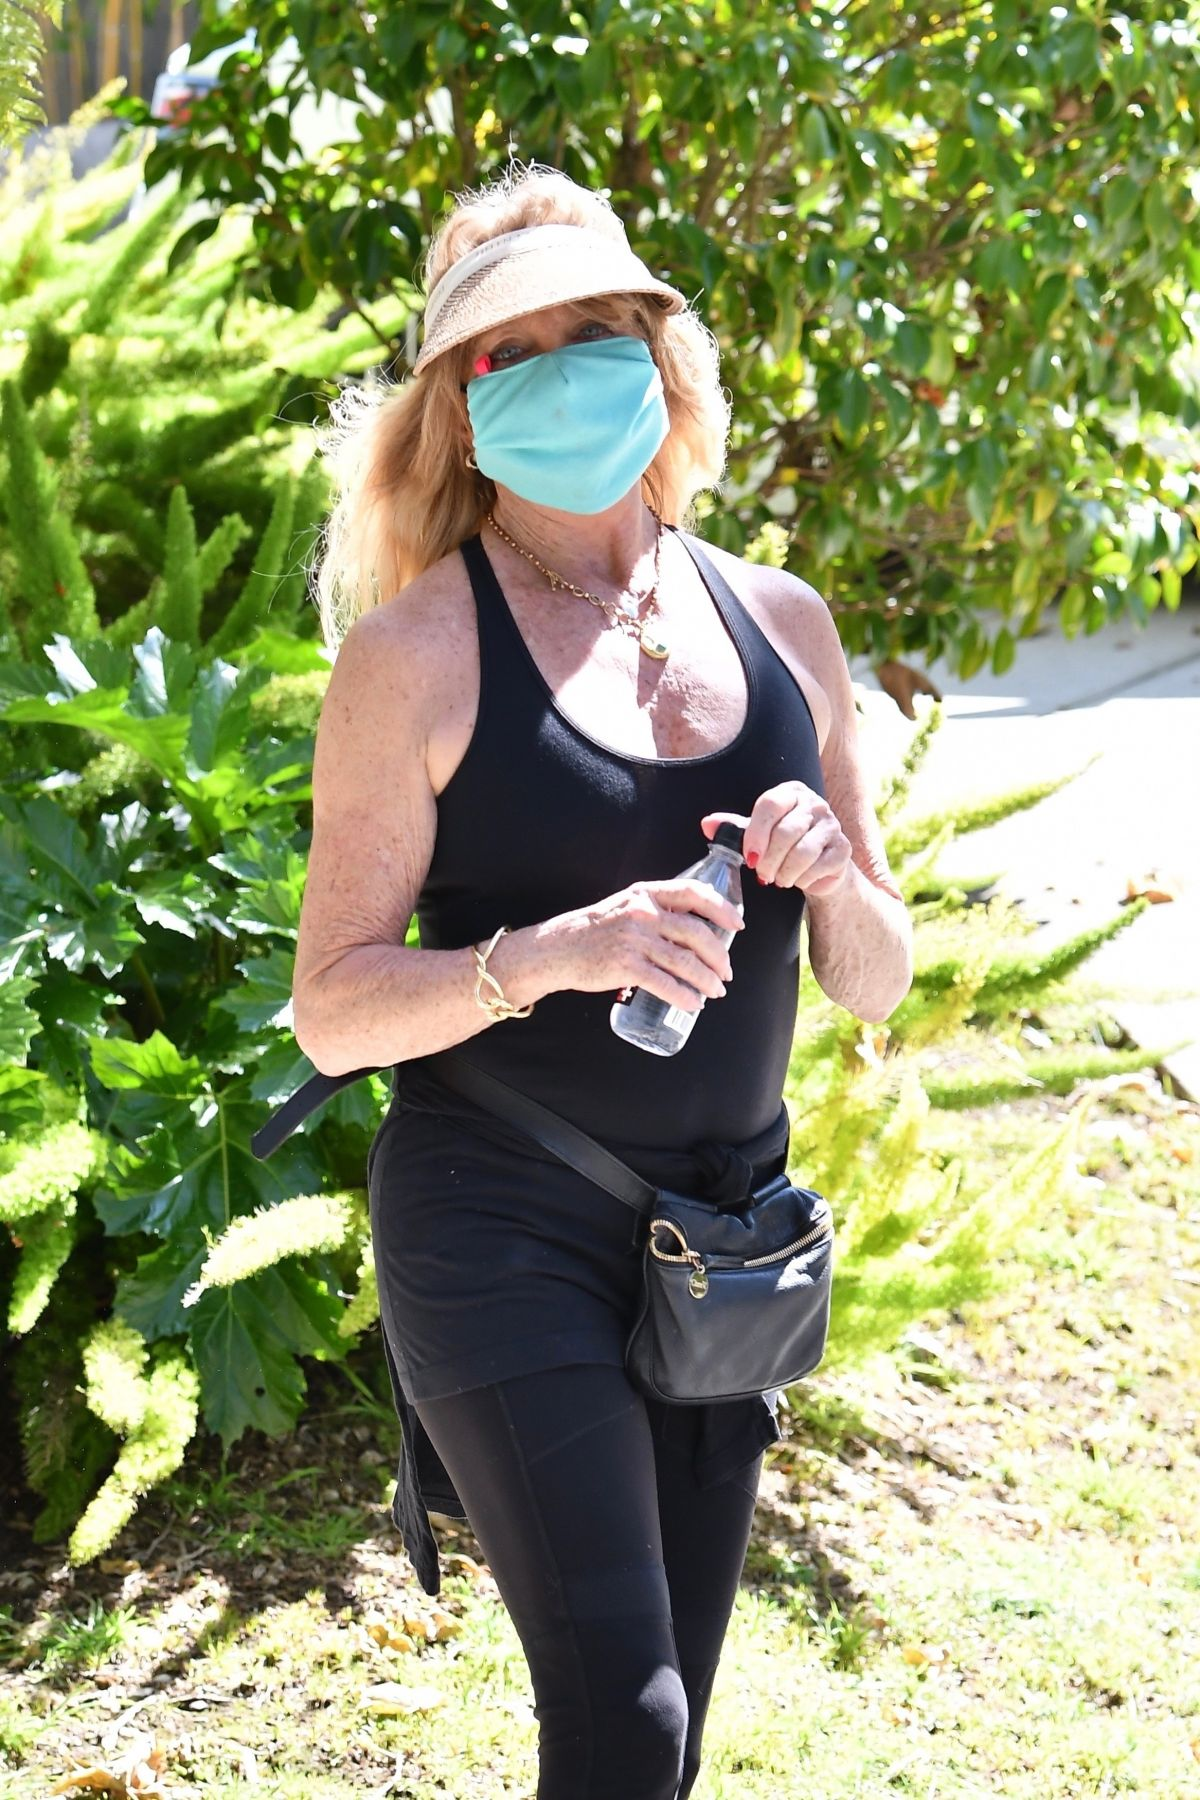 GOLDIE HAWN Out Hiking in Brentwood 04/11/2020 – HawtCelebs